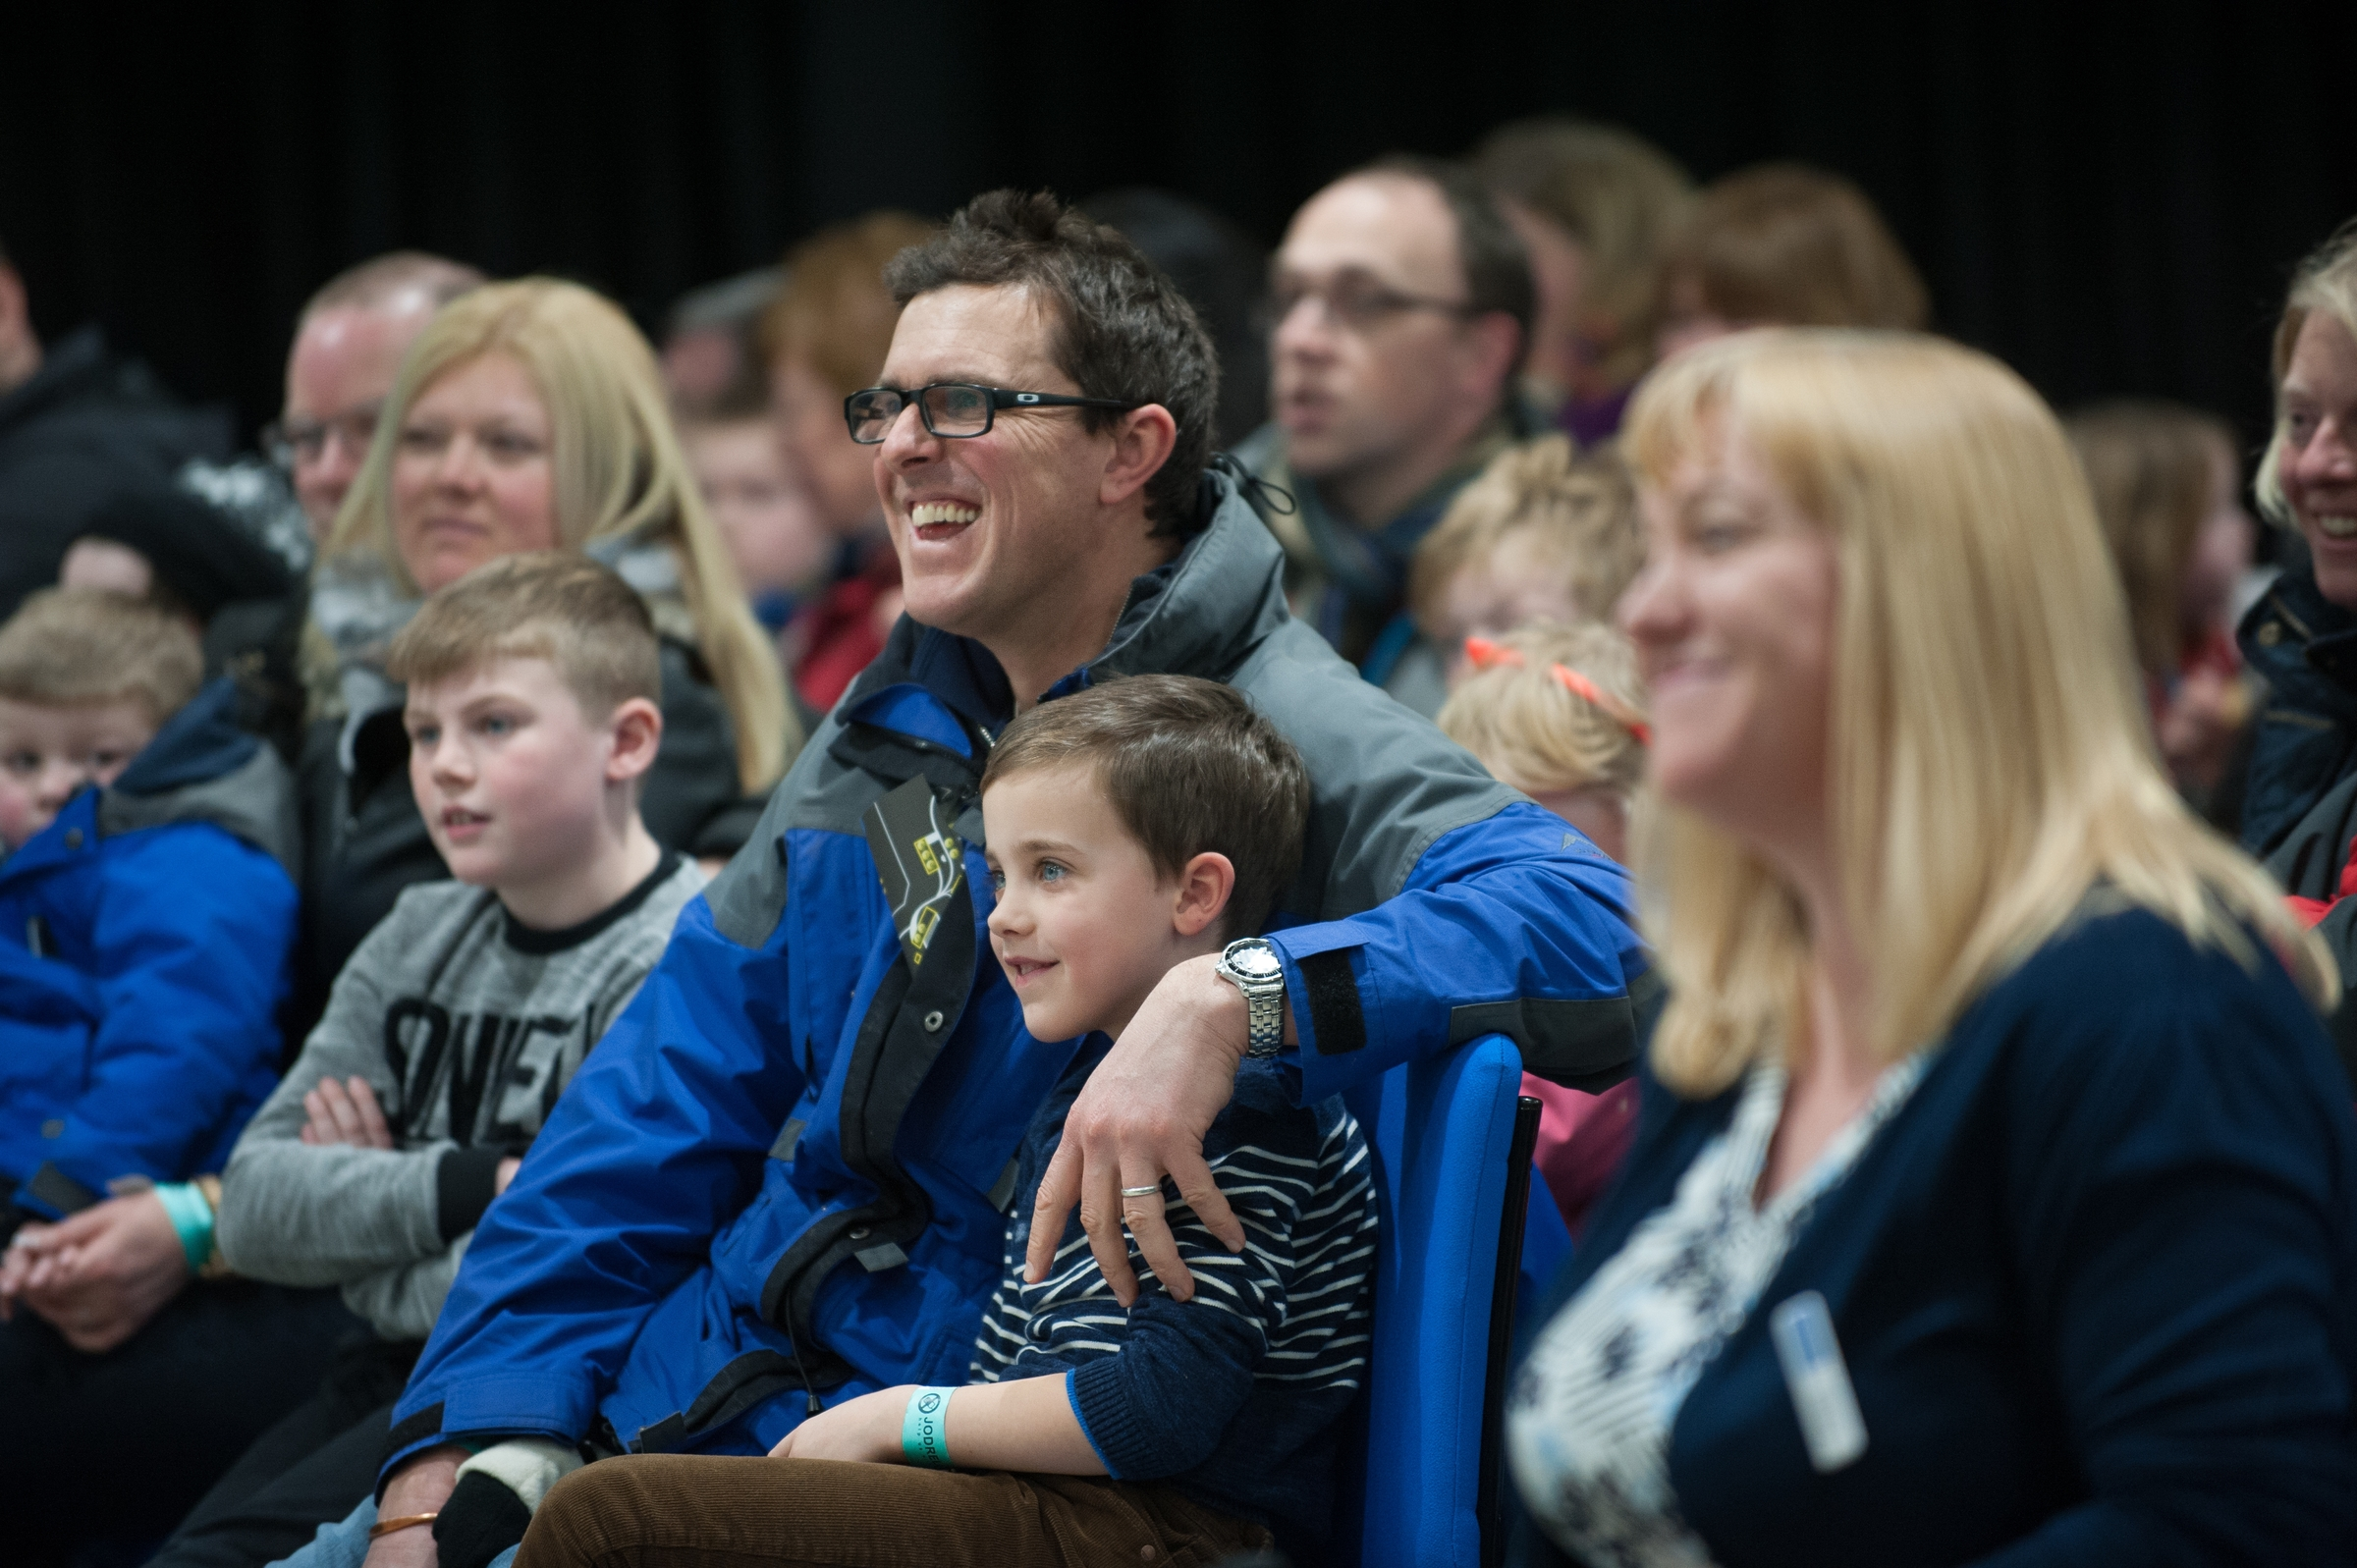 A smiling audience at a meet the expert and science show event